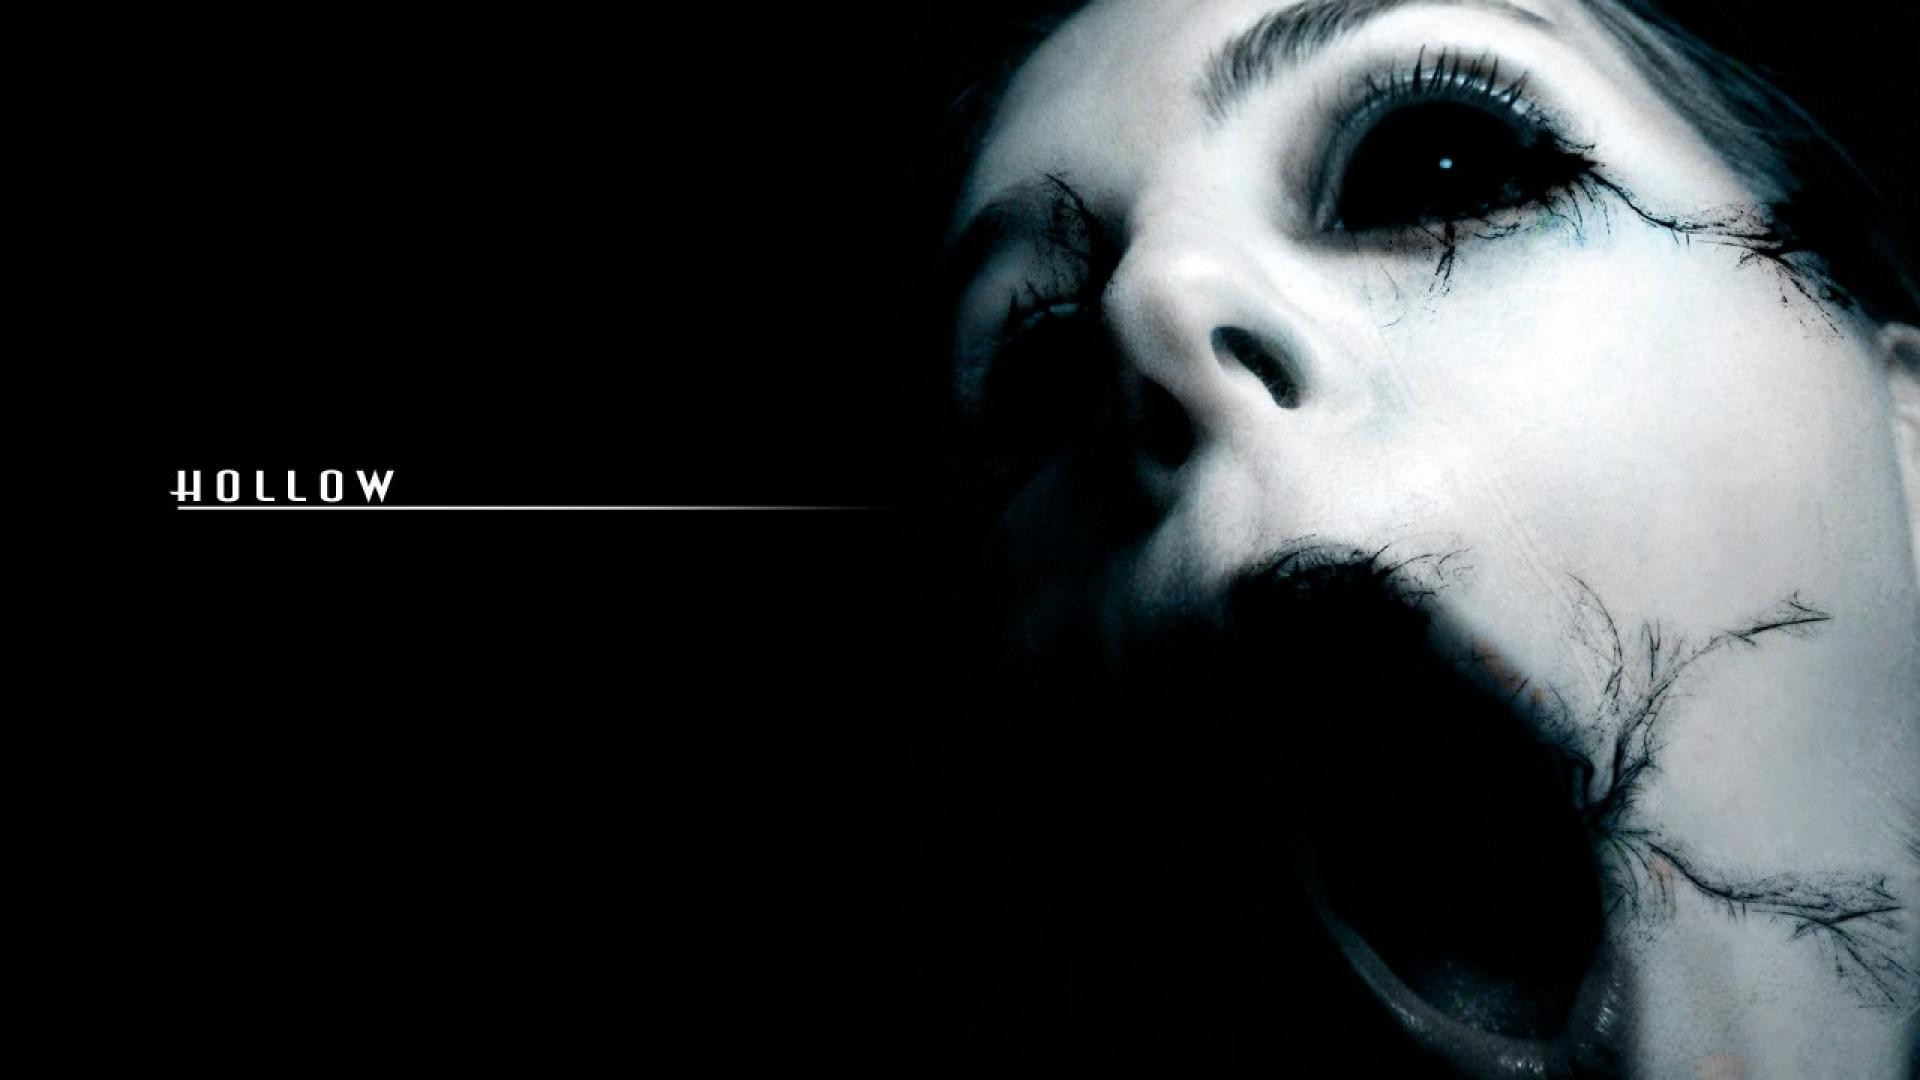 1920x1080 horror scary HD Wallpaper wallpaper 2312 HQ Desktop Wallpapers